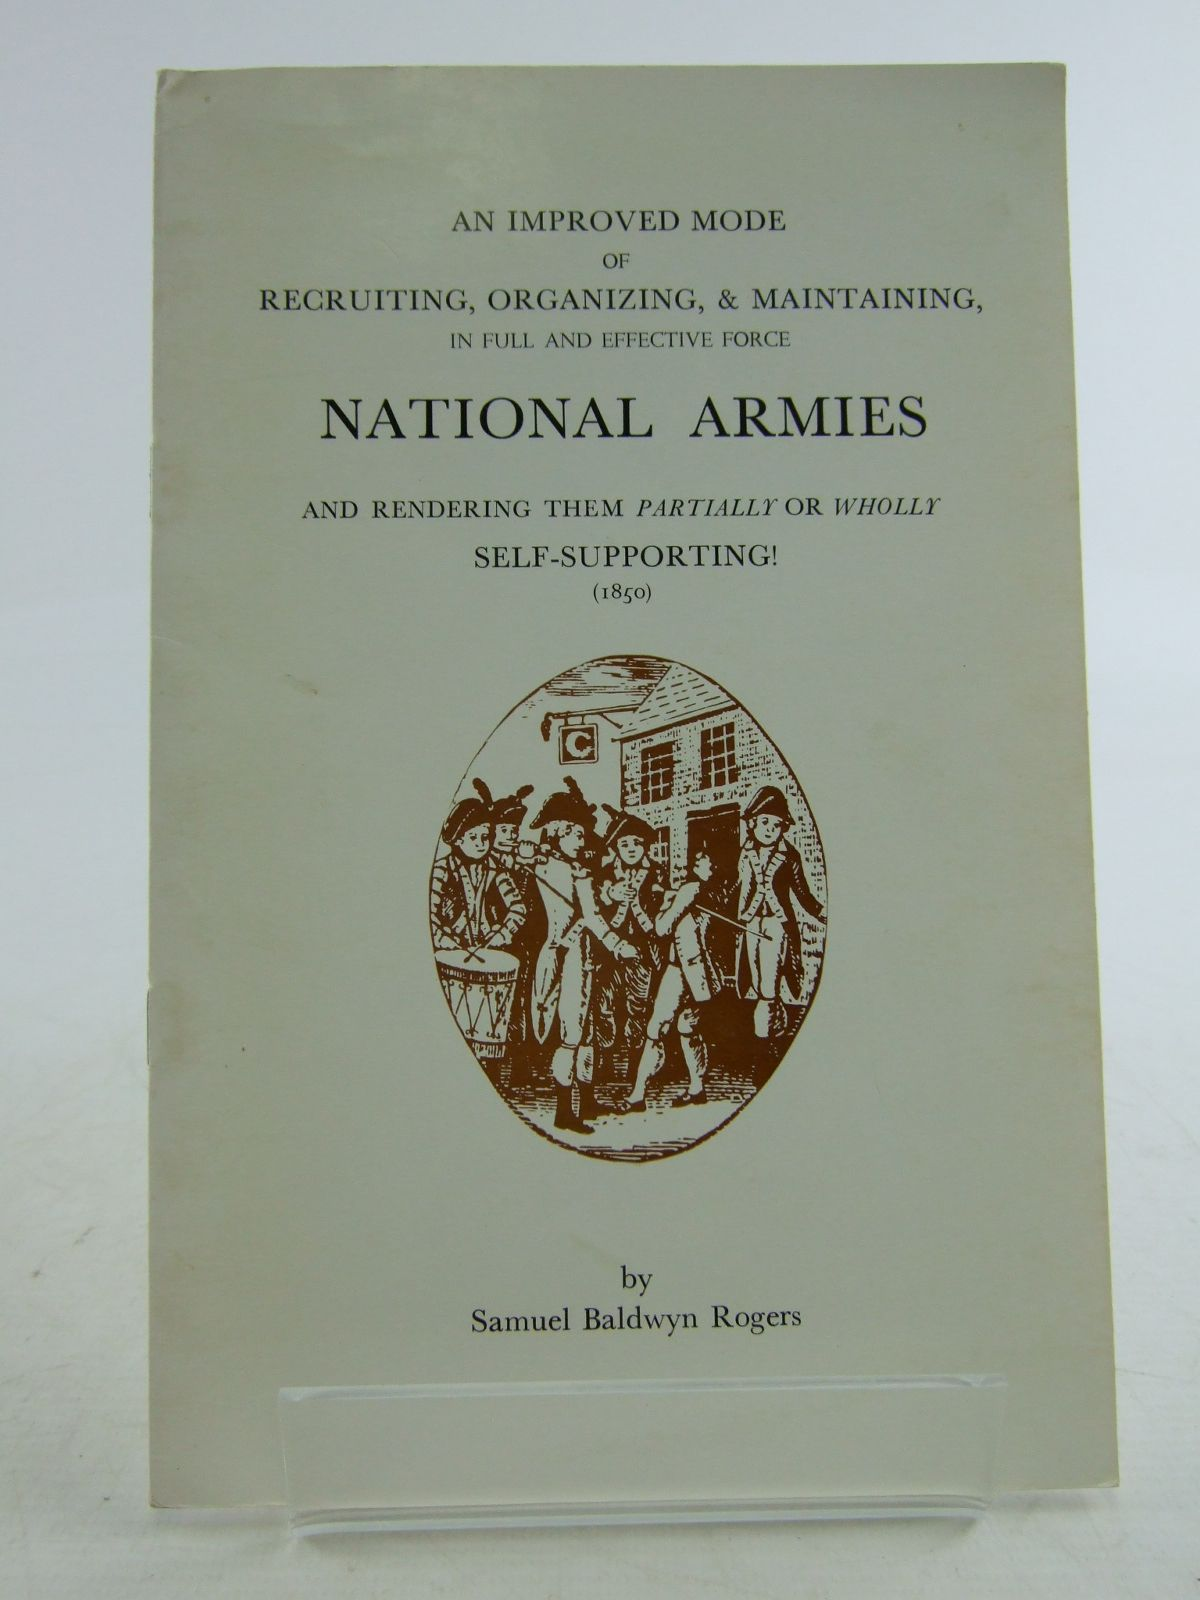 Photo of AN IMPROVED MODE OF RECRUITING, ORGANISING, & MAINTAINING, NATIONAL ARMIES written by Rogers, Samuel Baldwyn published by Moss Rose Press (STOCK CODE: 1806874)  for sale by Stella & Rose's Books